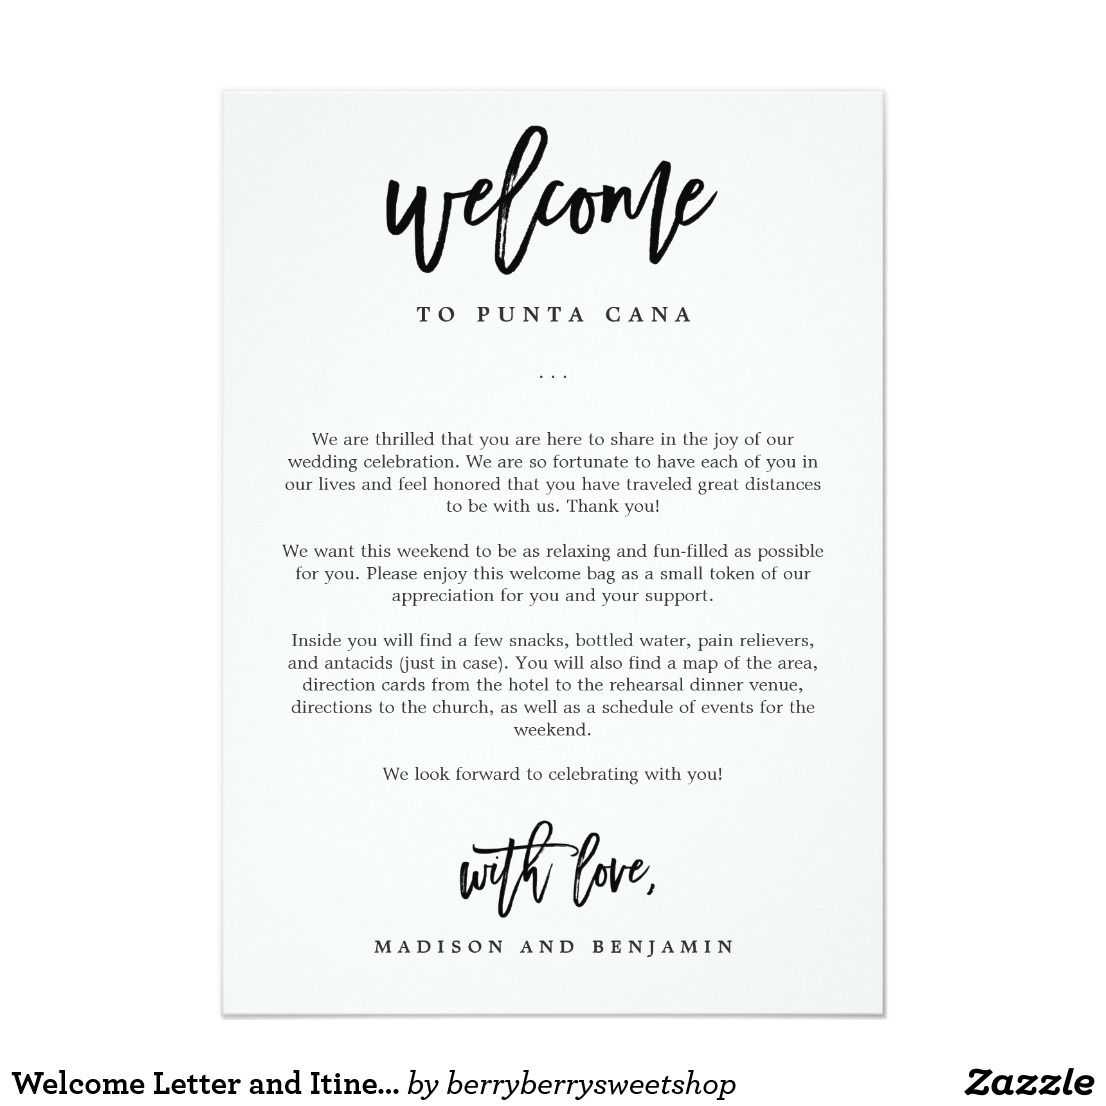 Welcome Letter Template Wedding Itinerary Card Welcome Bag Letter Wedding Agenda Printable Hotel Welcome Note Templett W30 Wedding Agenda Wedding Itinerary Welcome Letters